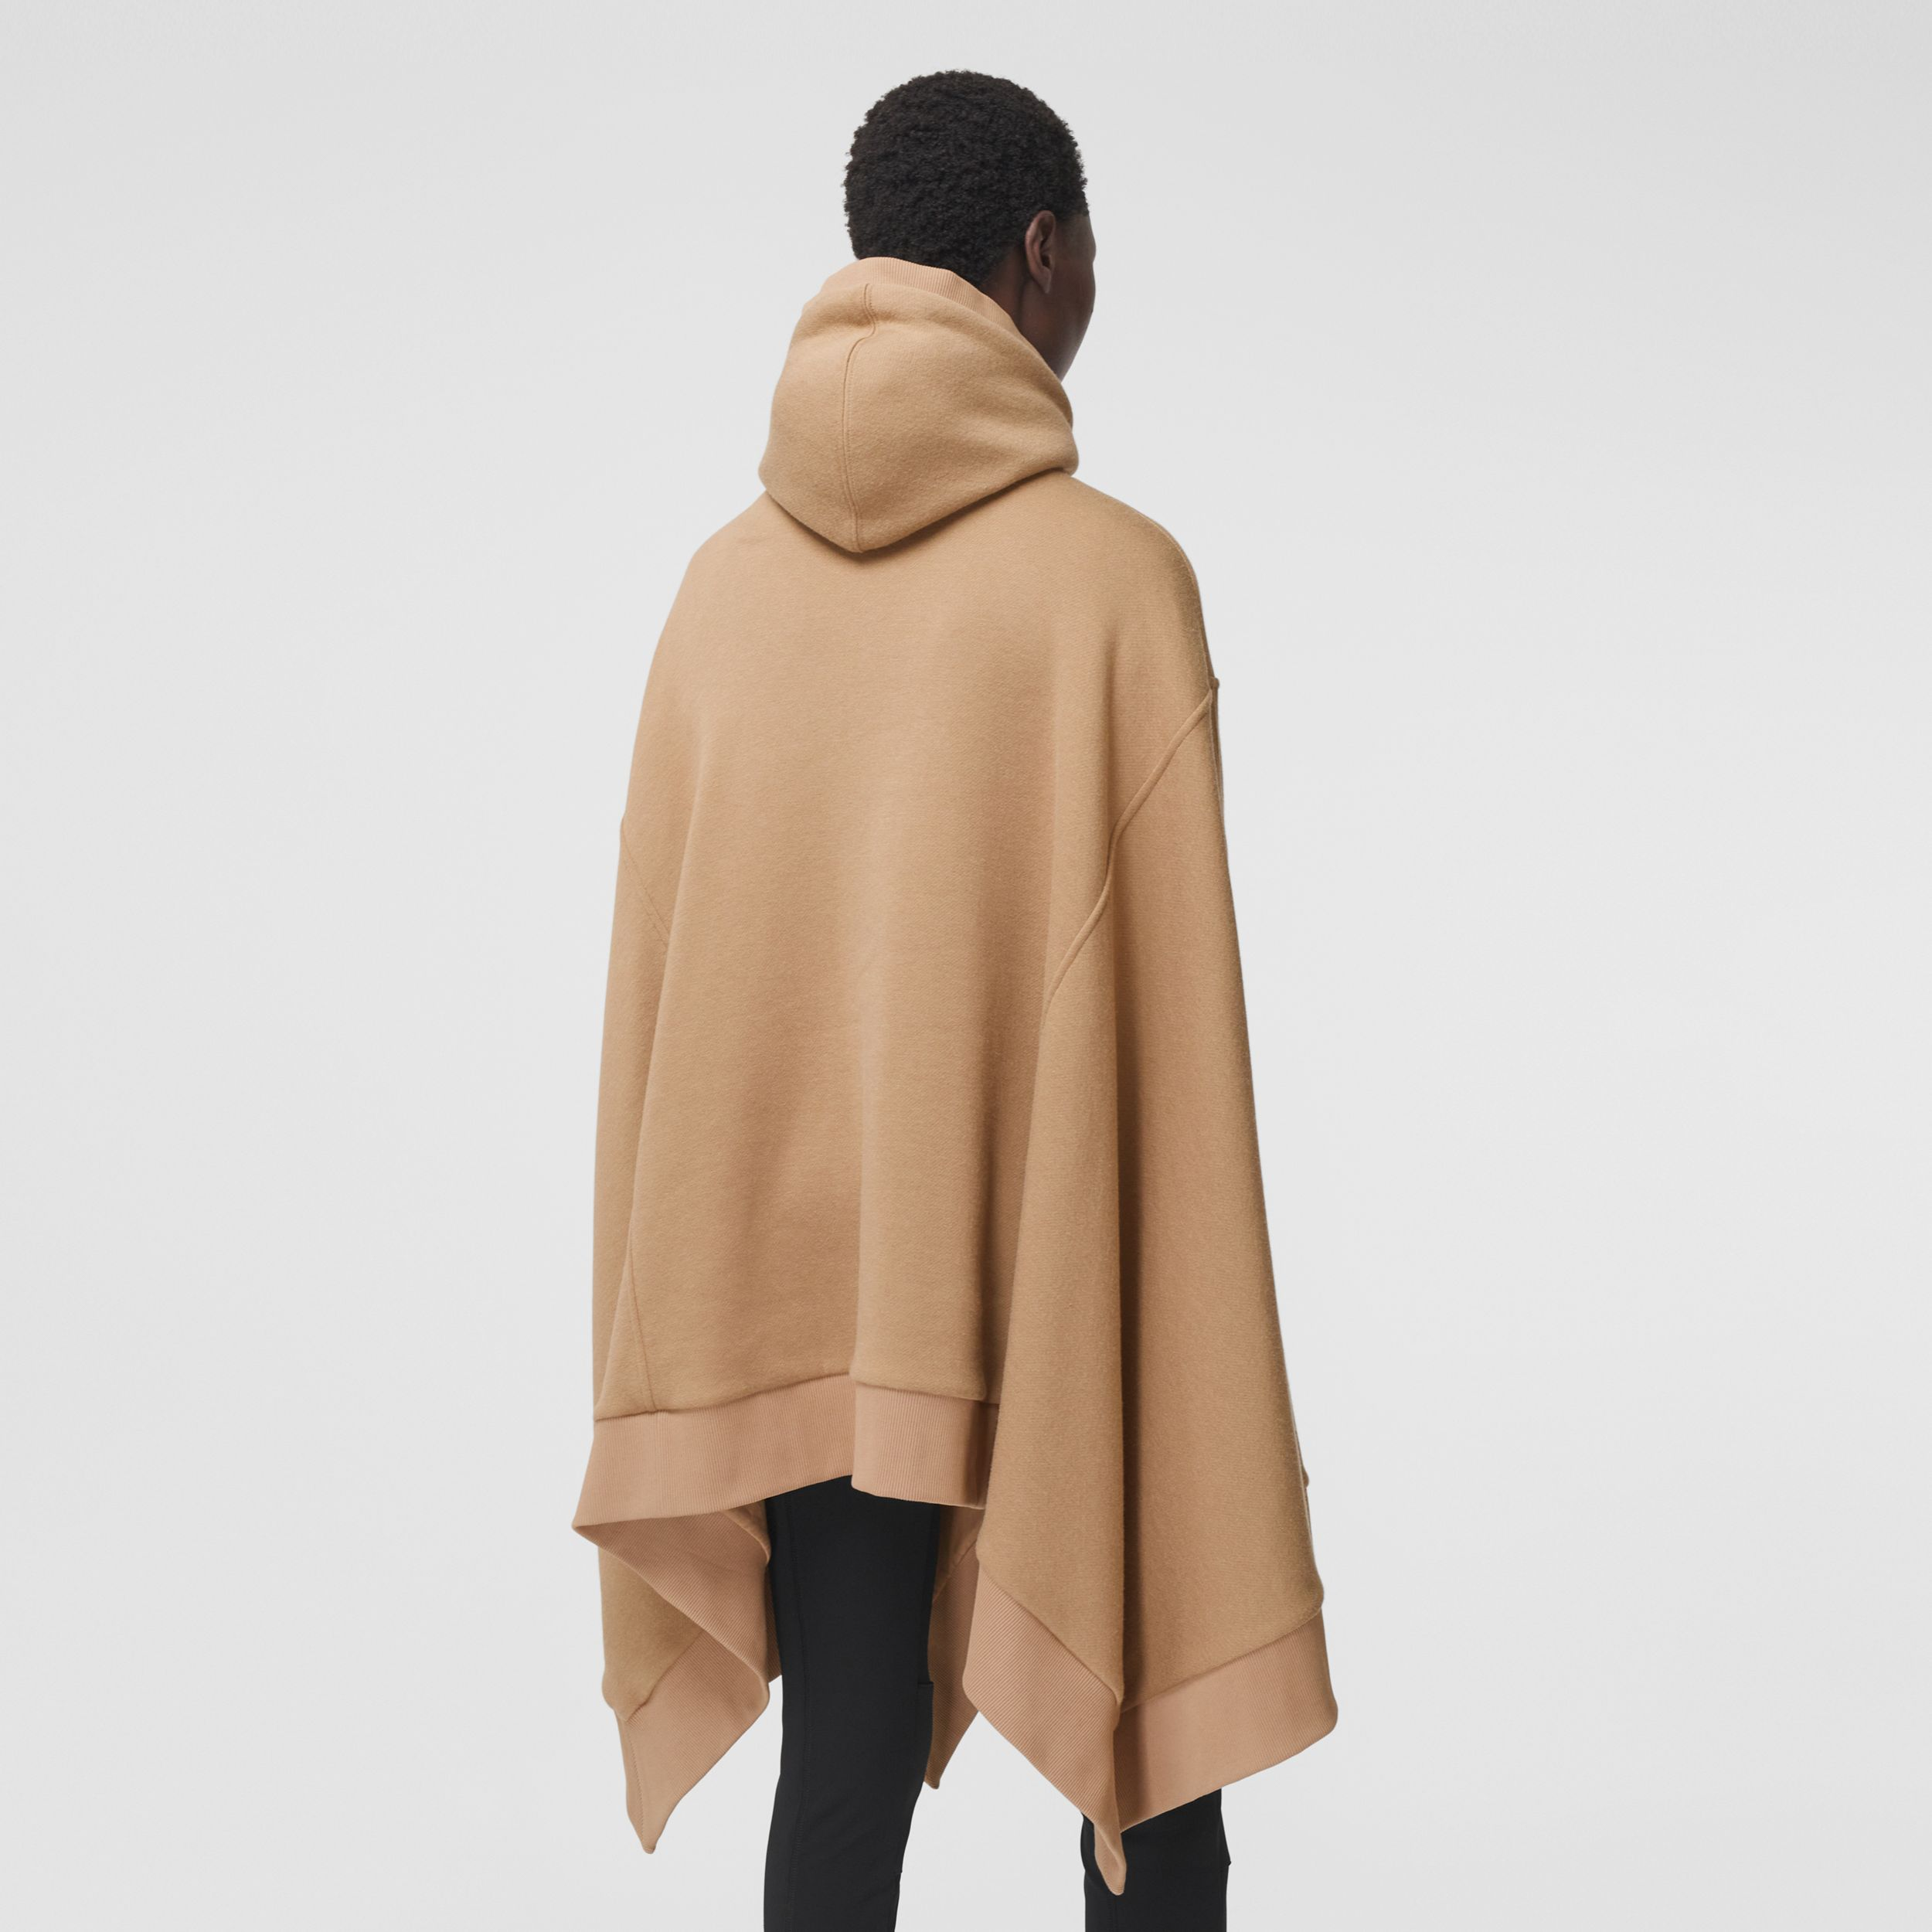 Cut-out Sleeve Jersey Hooded Cape in Camel - Women | Burberry - 3